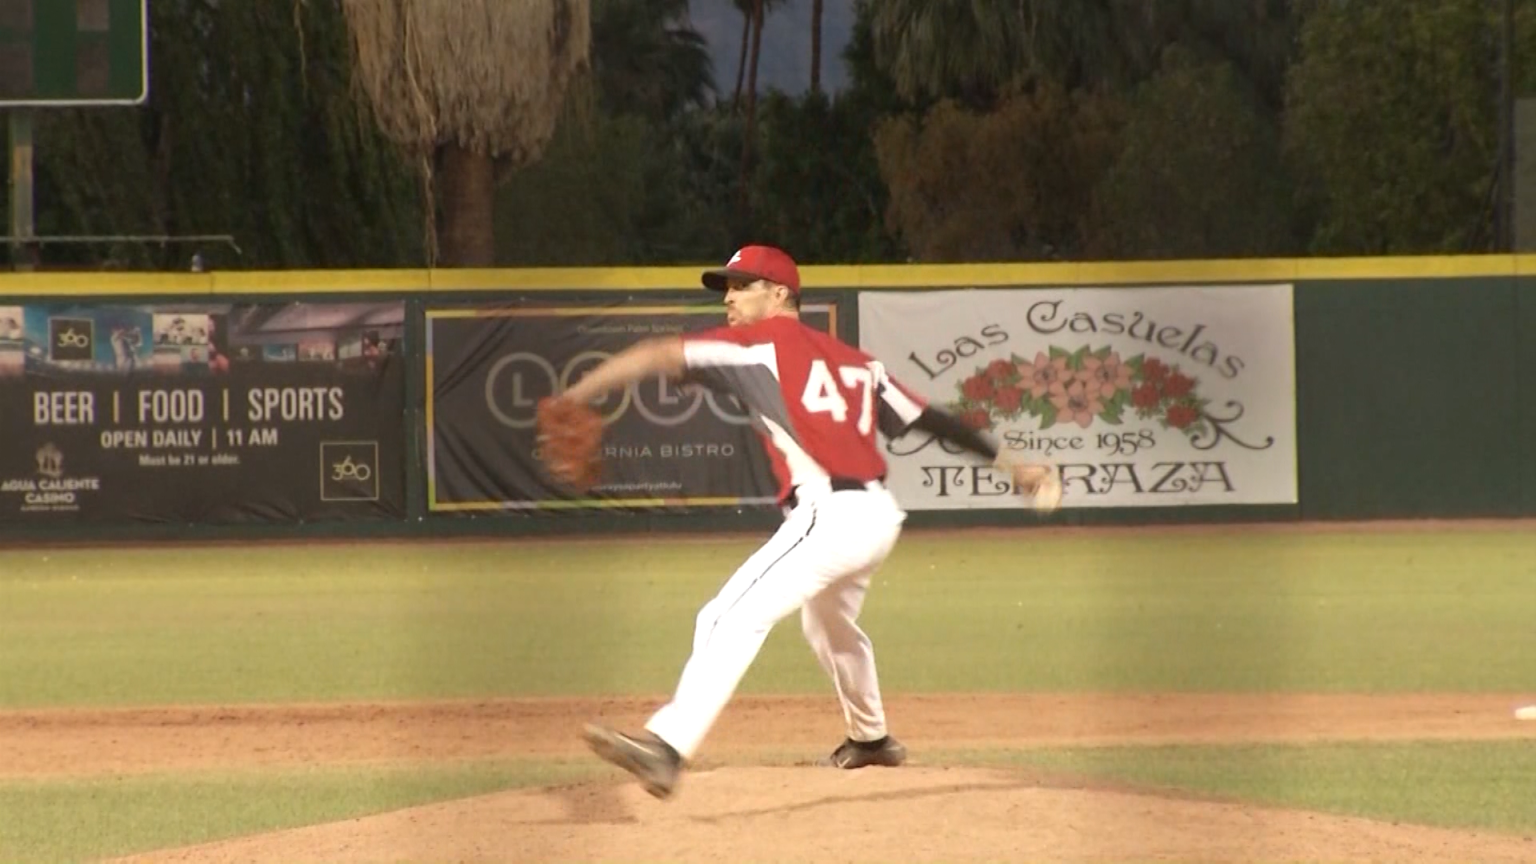 30-year-old Palm Springs Power pitcher hopeful to make it back to the majors